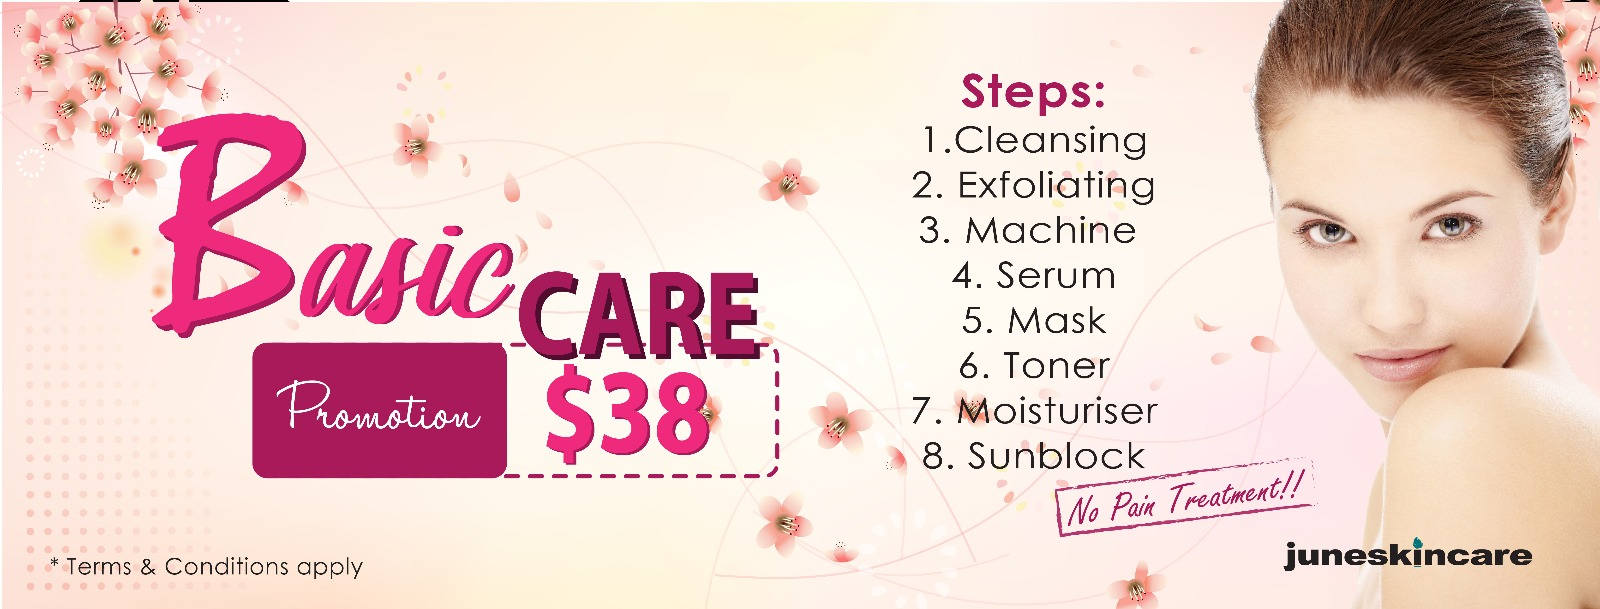 Basic Care Promotion $38